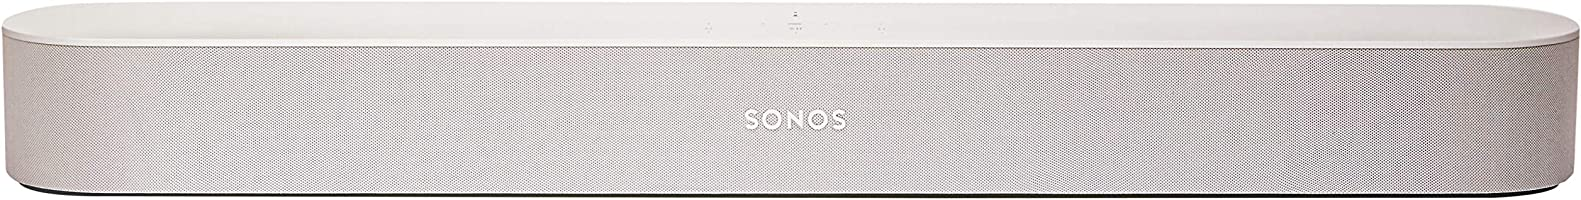 Sonos Beam Compact Smart Sound bar for Your TV with Amazon Alexa Voice Control Built-in, White